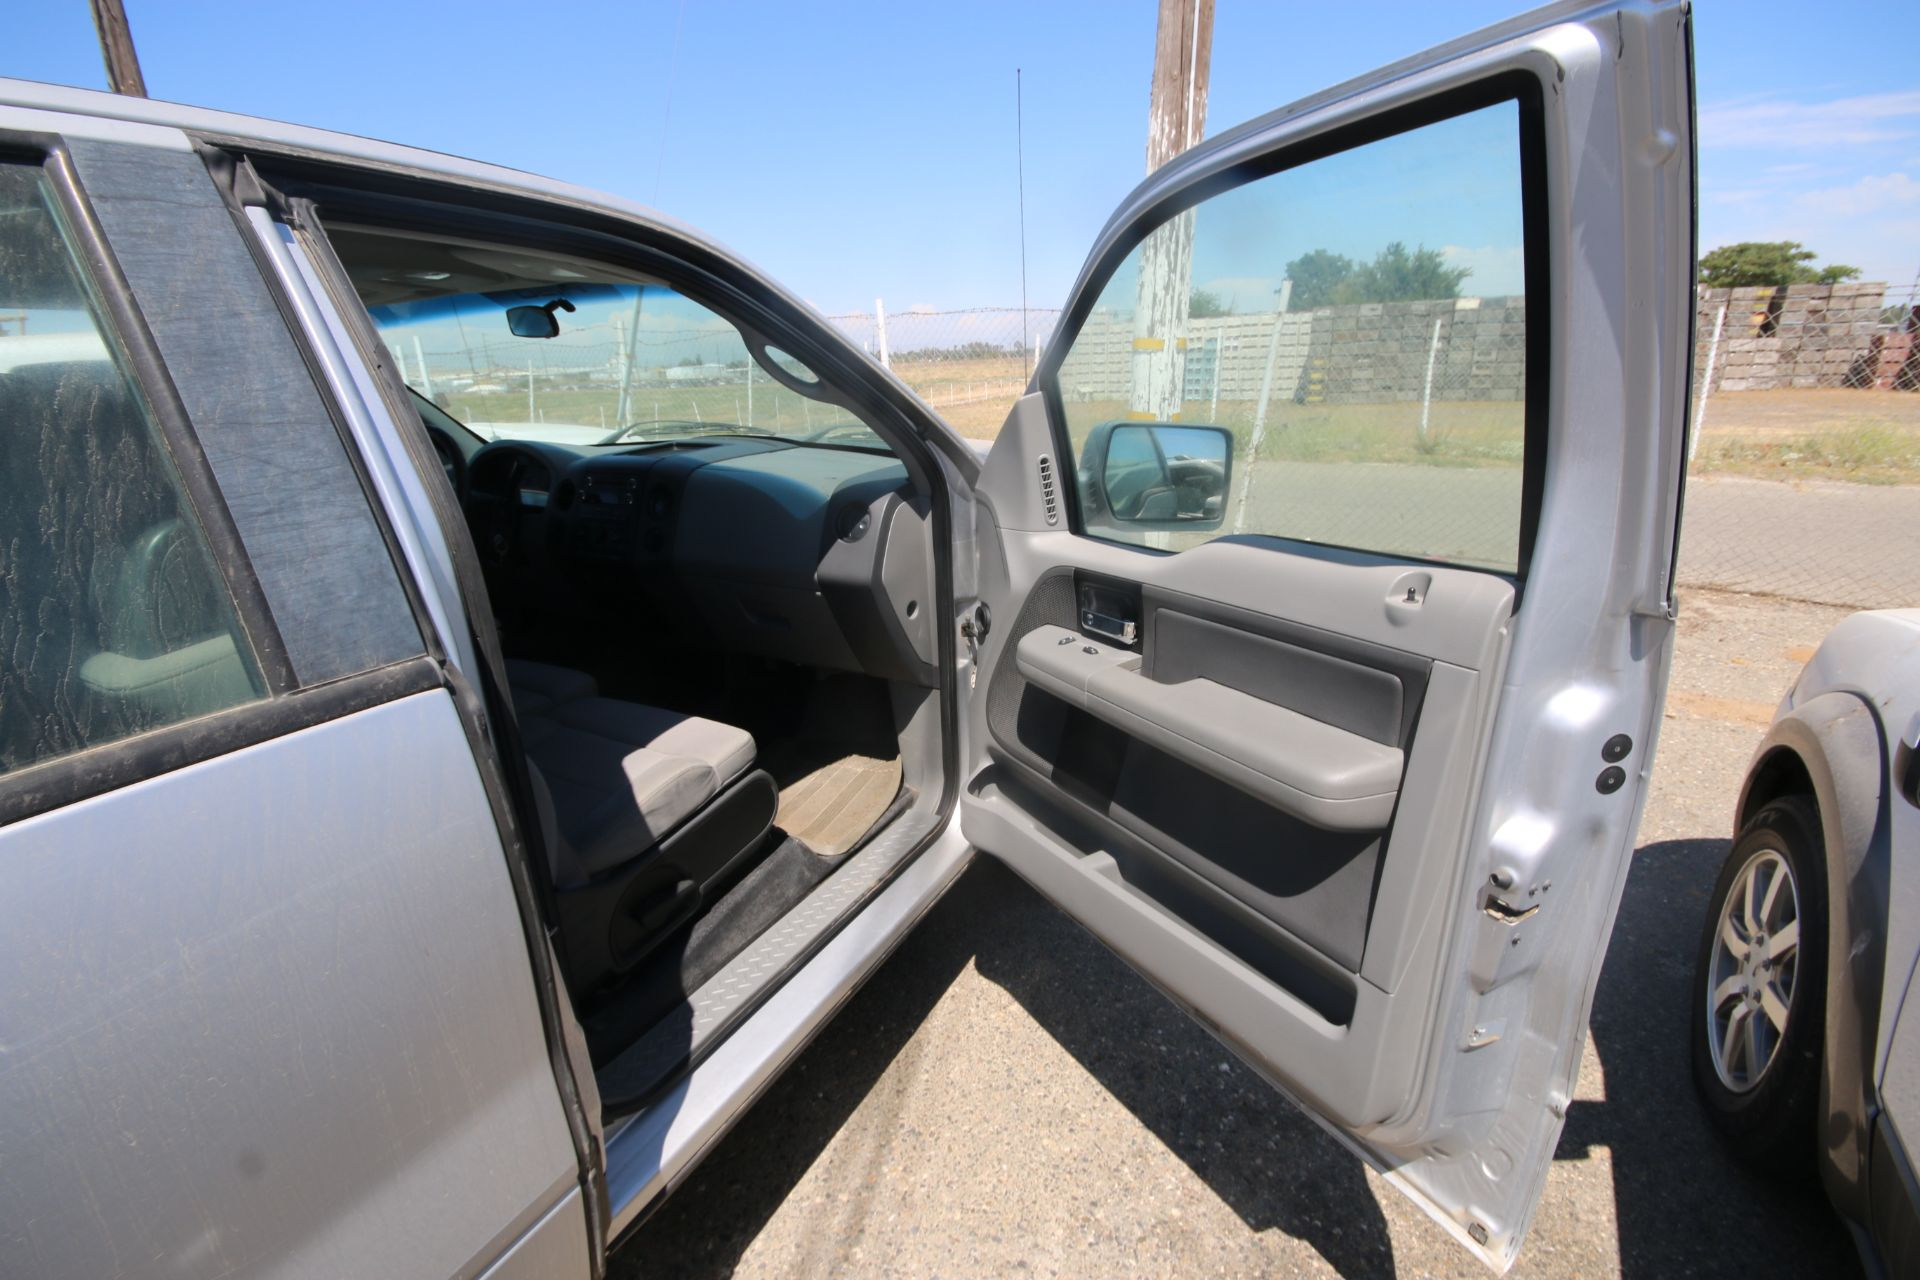 2008 Ford F150 Pick Up Truck, VIN #: 1FTRX12W7BFB9710, with 214,817 Miles, Started Up as of 06/24/ - Image 10 of 24